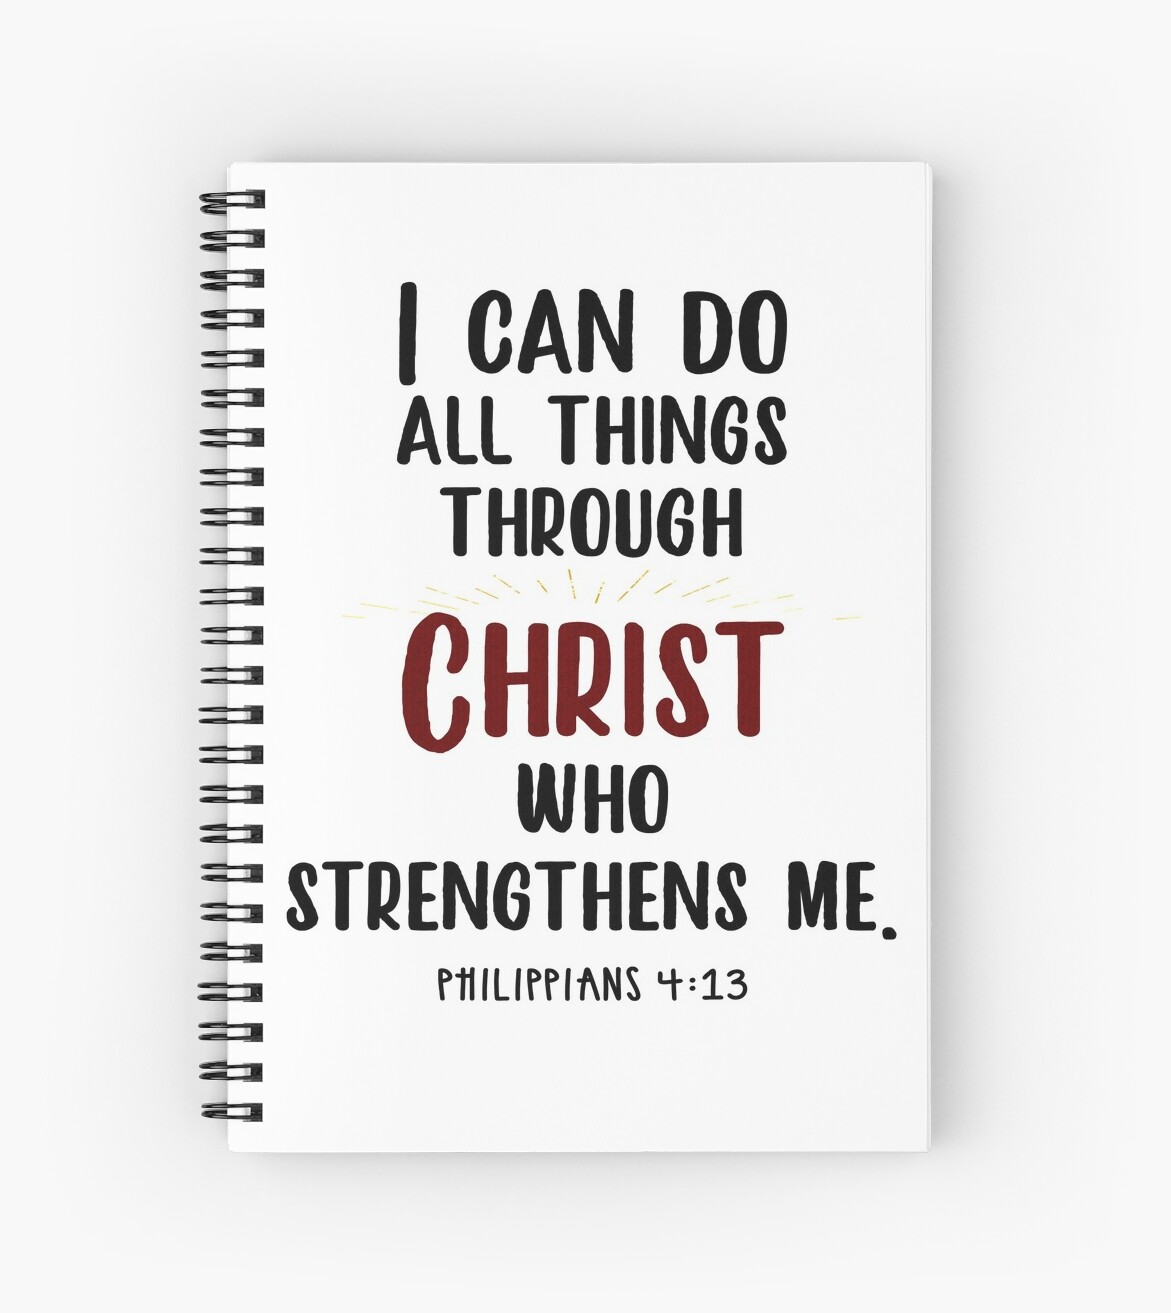 da3cb37db2d I Can Do All Things Through Christ Who Strengthens Me - Philippians 4 13